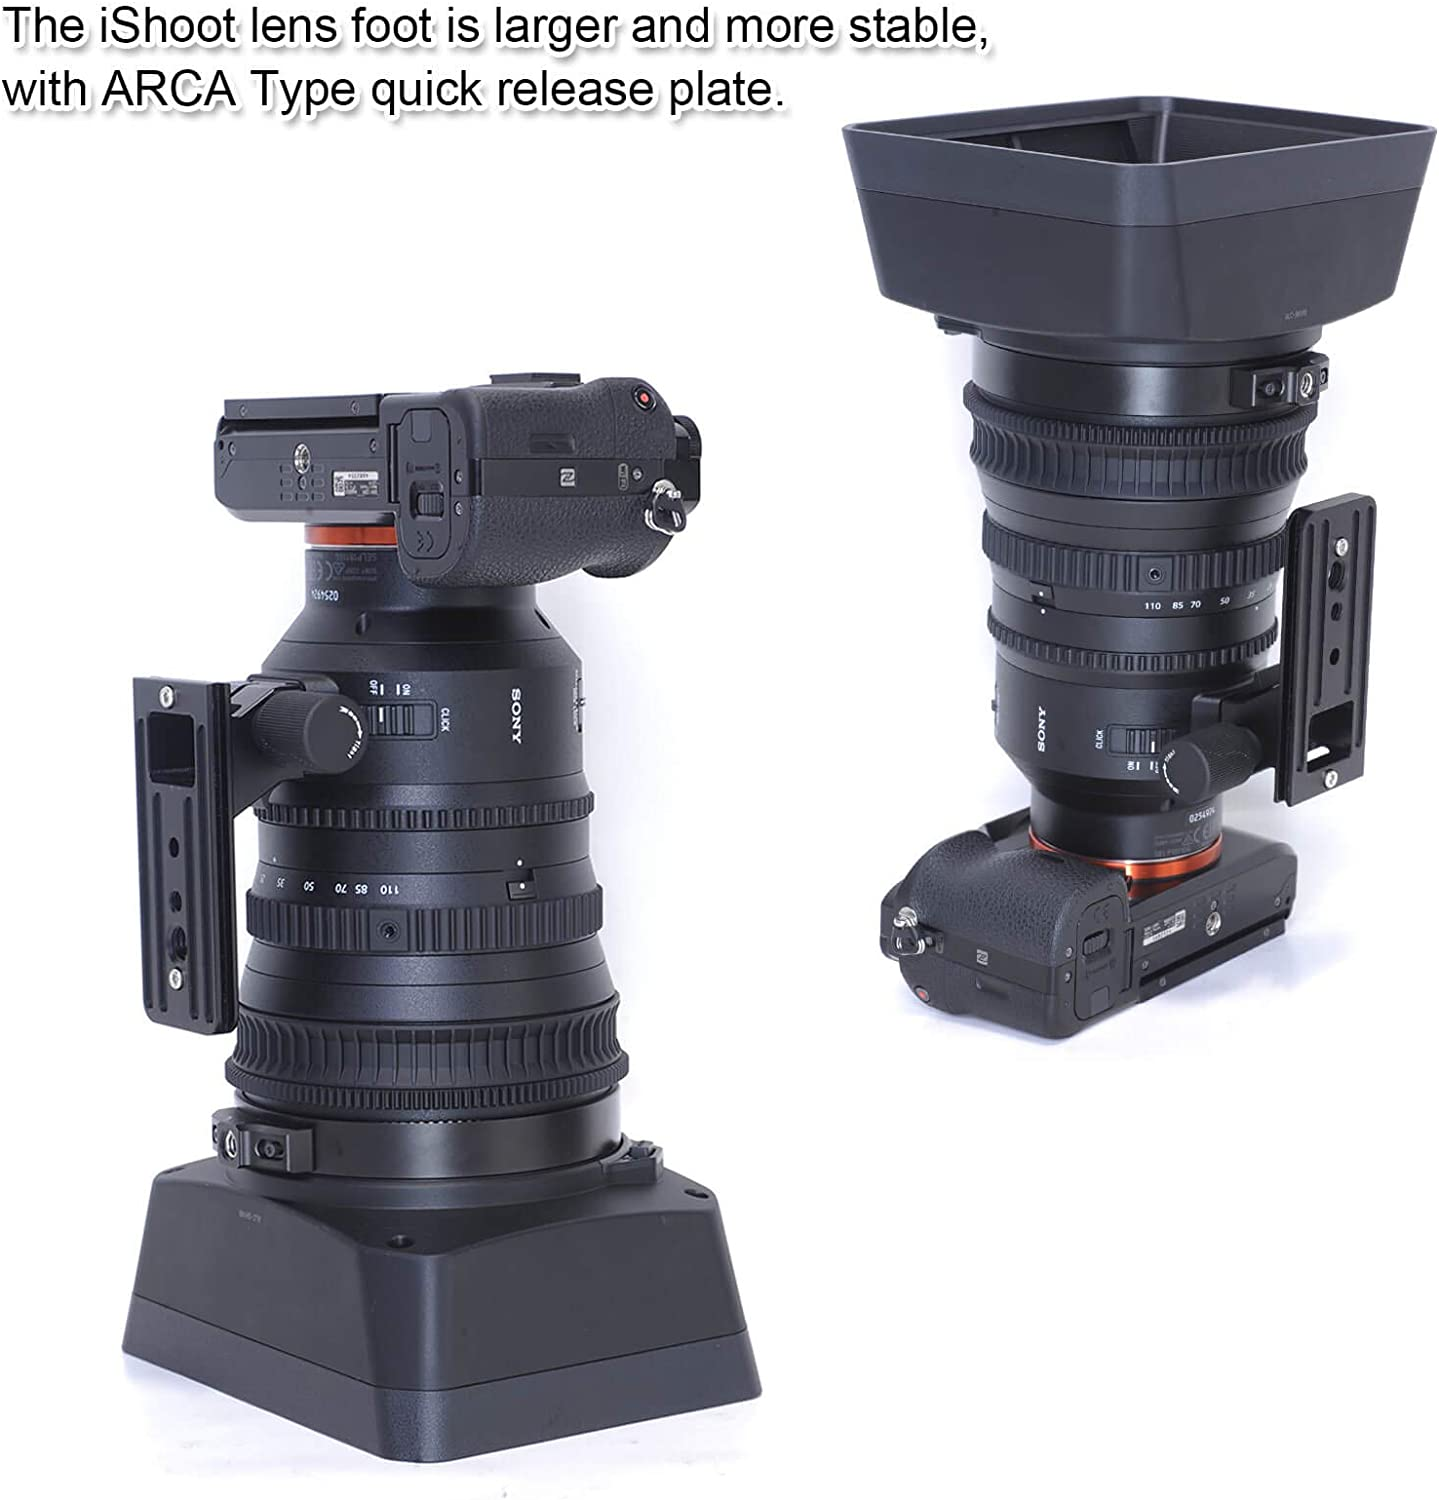 iShoot Arca Type Replacement Lens Foot for Sony E PZ 18-110mm f//4 G OSS Lens CNC Machined Aviation Aluminum Lens Tripod Mount Ring Replacement Base with 90mm Quick Release Plate for Tripod Head